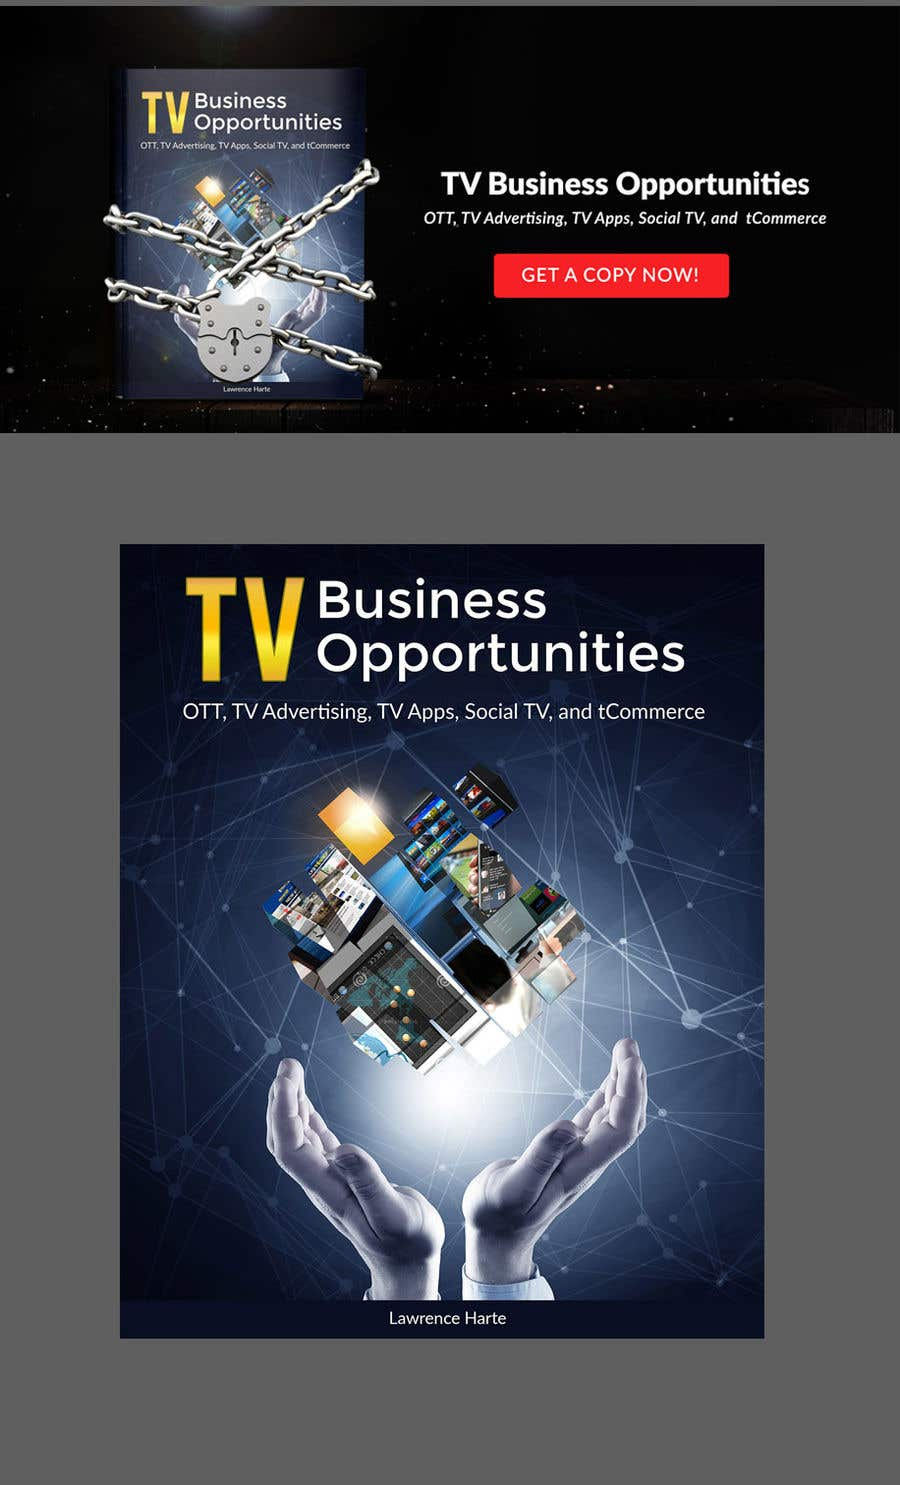 Bài tham dự cuộc thi #51 cho Create a Front Book Cover Image about New TV Business Opportunities